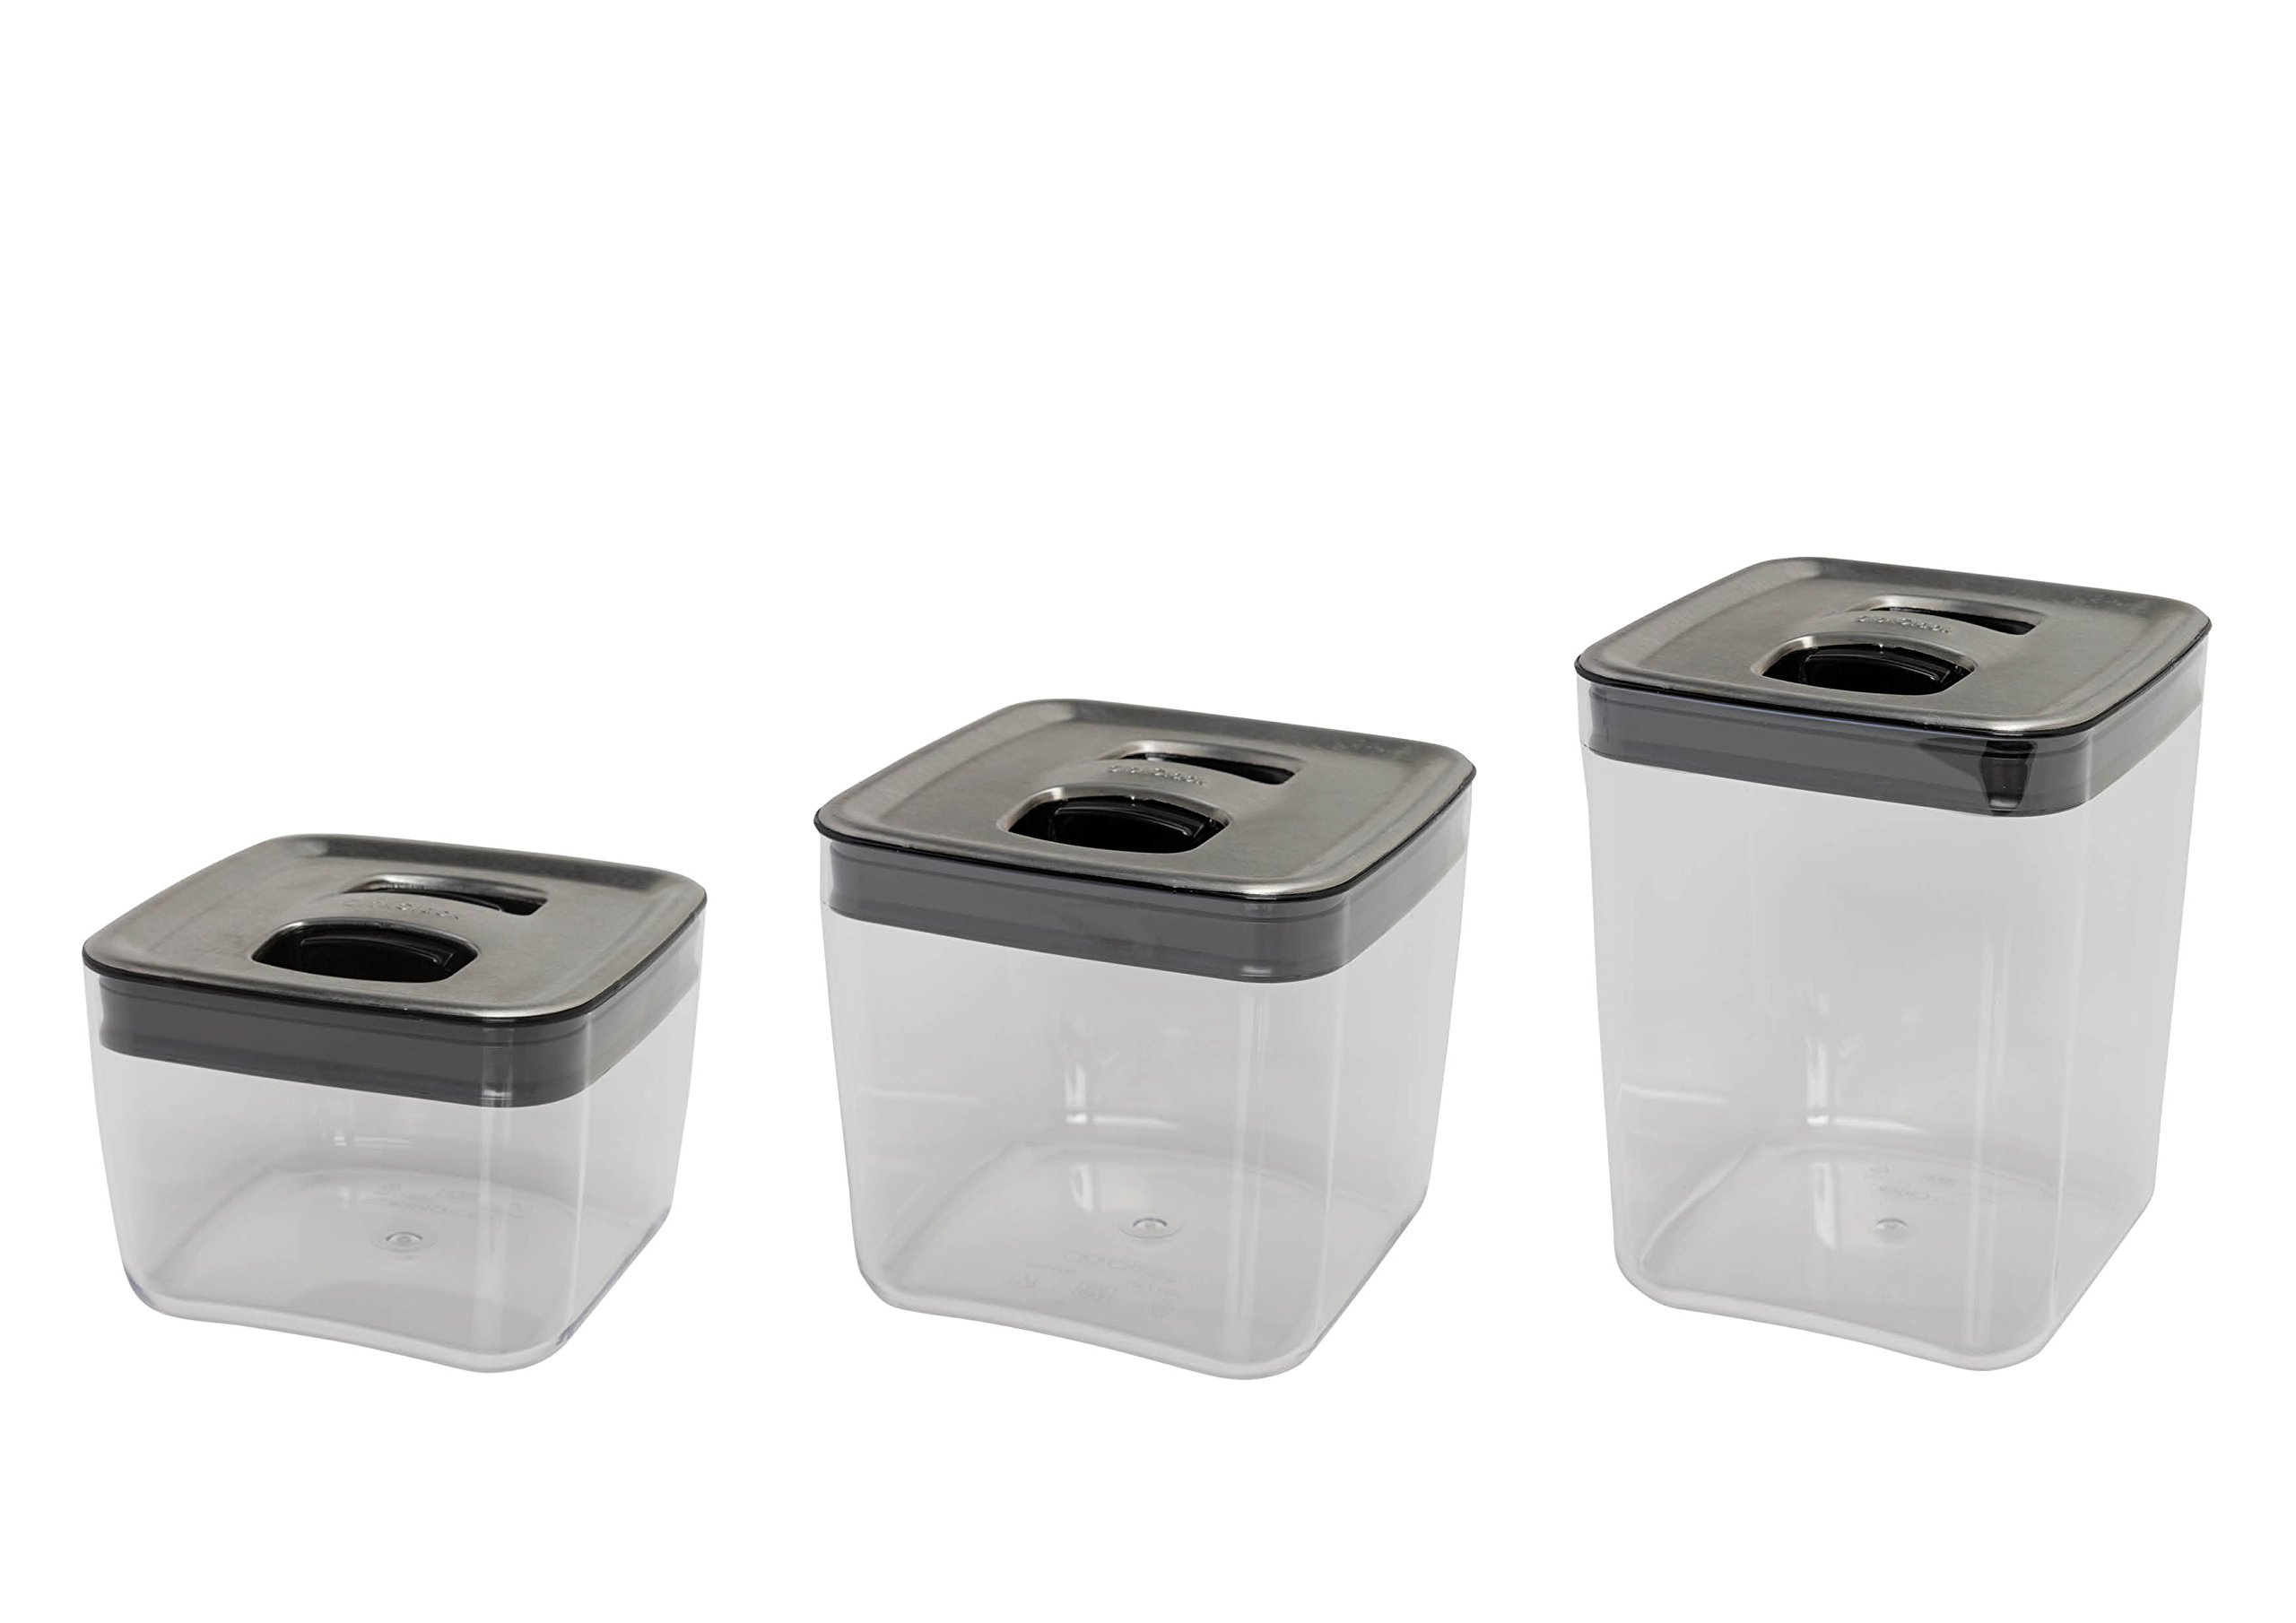 click clack cube storage containers with stainless steel lids set of 3 ebay. Black Bedroom Furniture Sets. Home Design Ideas